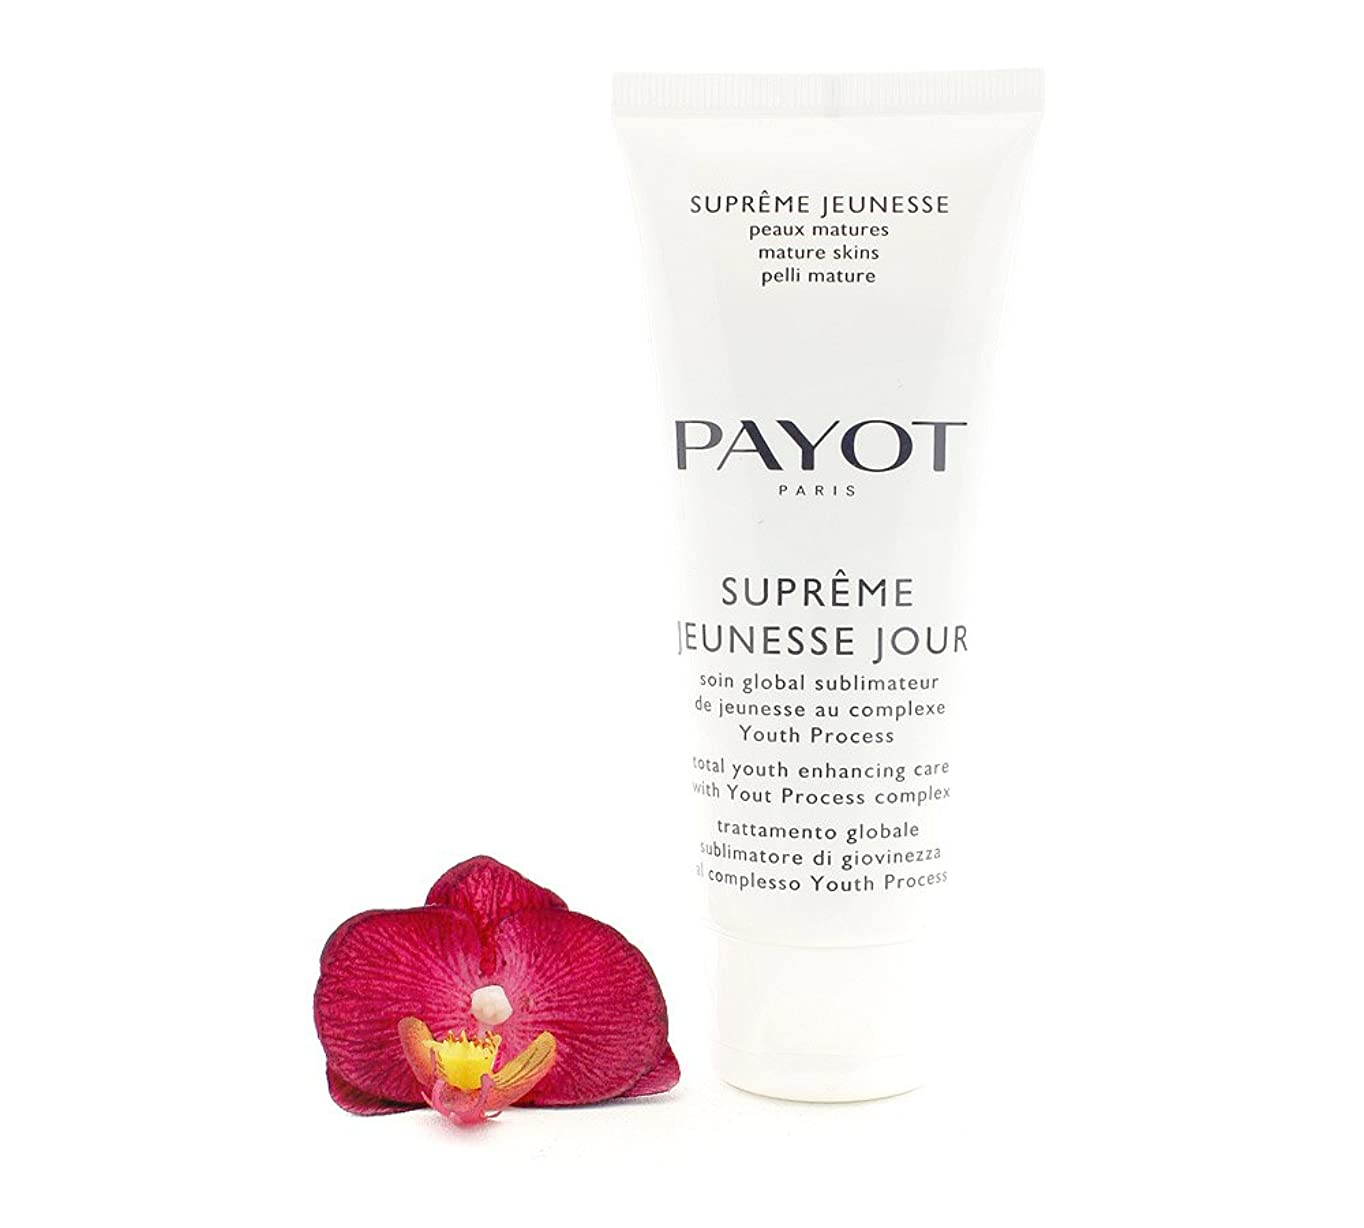 ダイアクリティカル保存する行進PAYOT Supreme Jeunesse Jour Total Youth Enhancing Care Cream 100 ml / 3.3 Fl.oz. - SALON SIZE